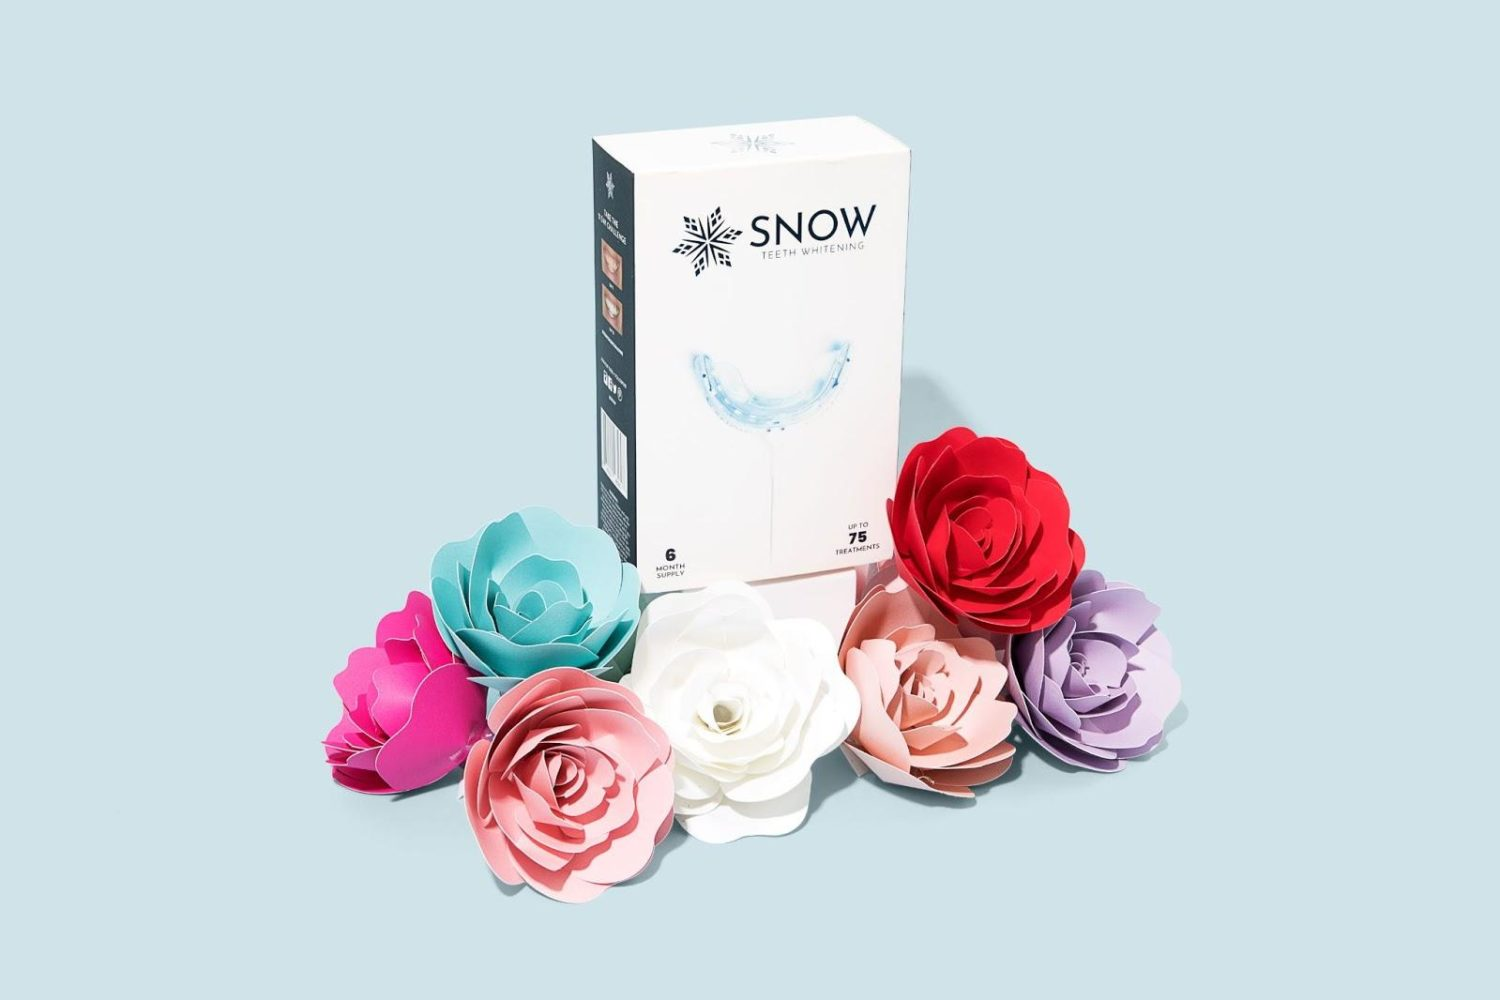 Snow Teeth Whitening Review 2021: Must Read Before Buying